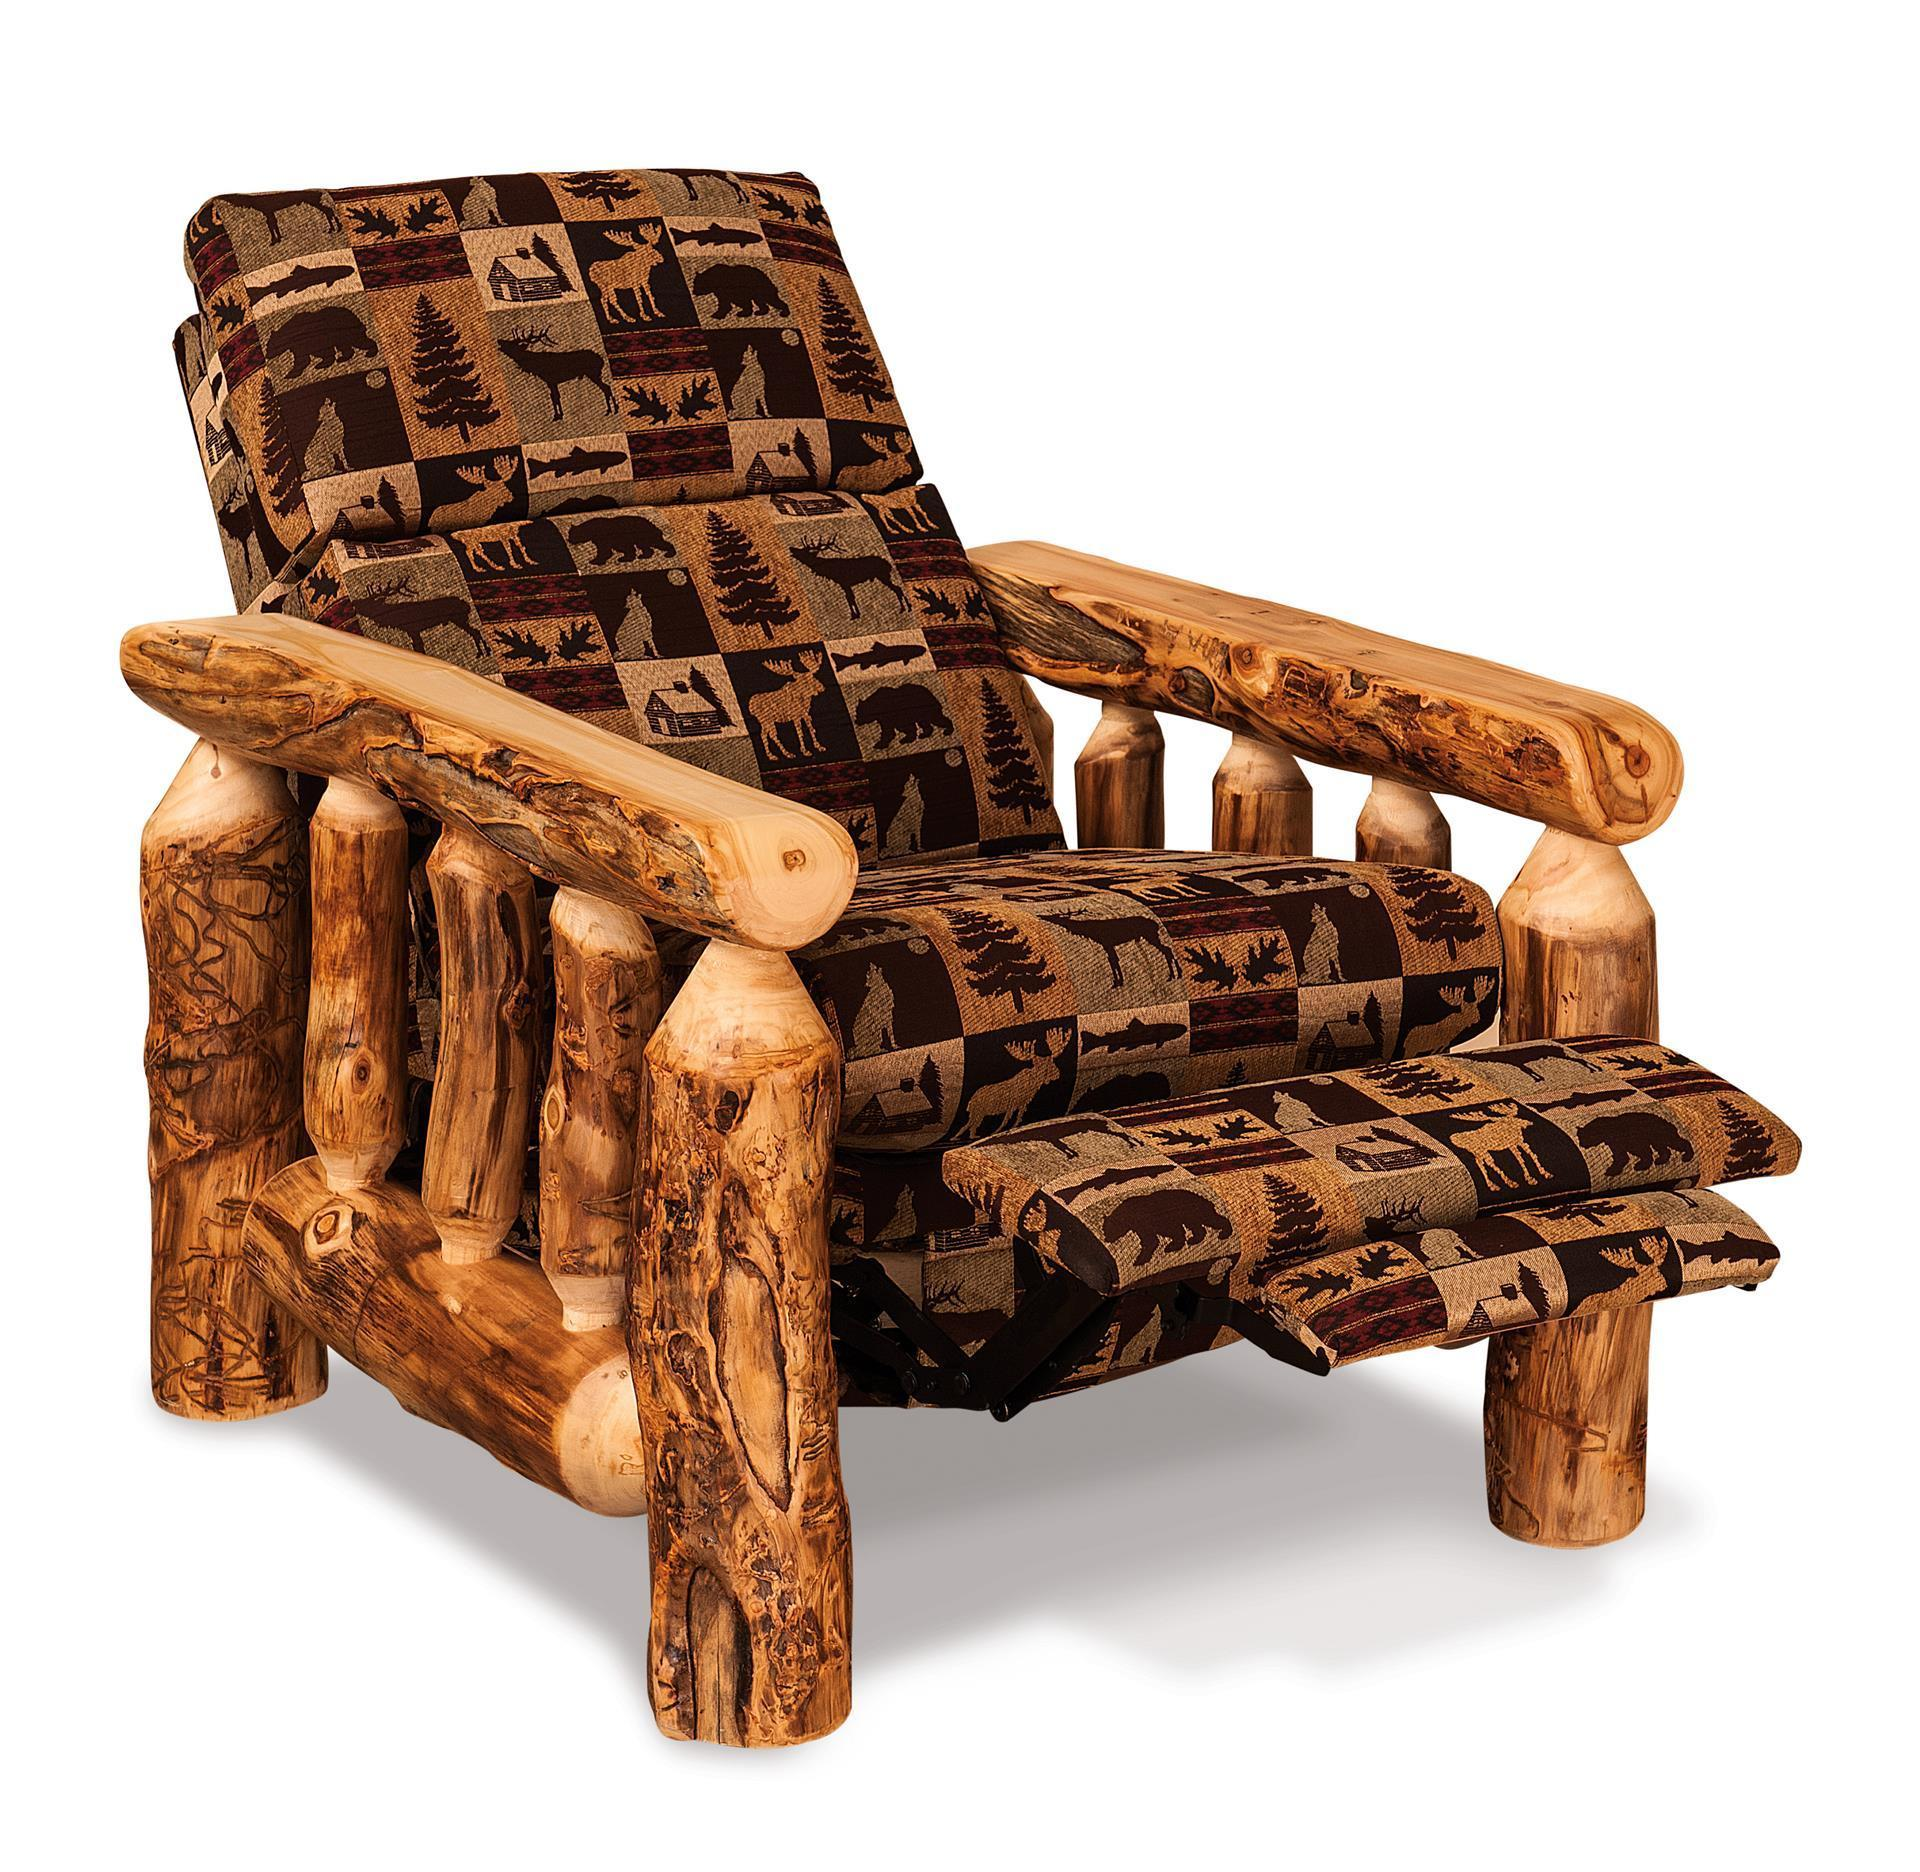 Rustic Log Cabin Recliner From Dutchcrafters Amish Furniture